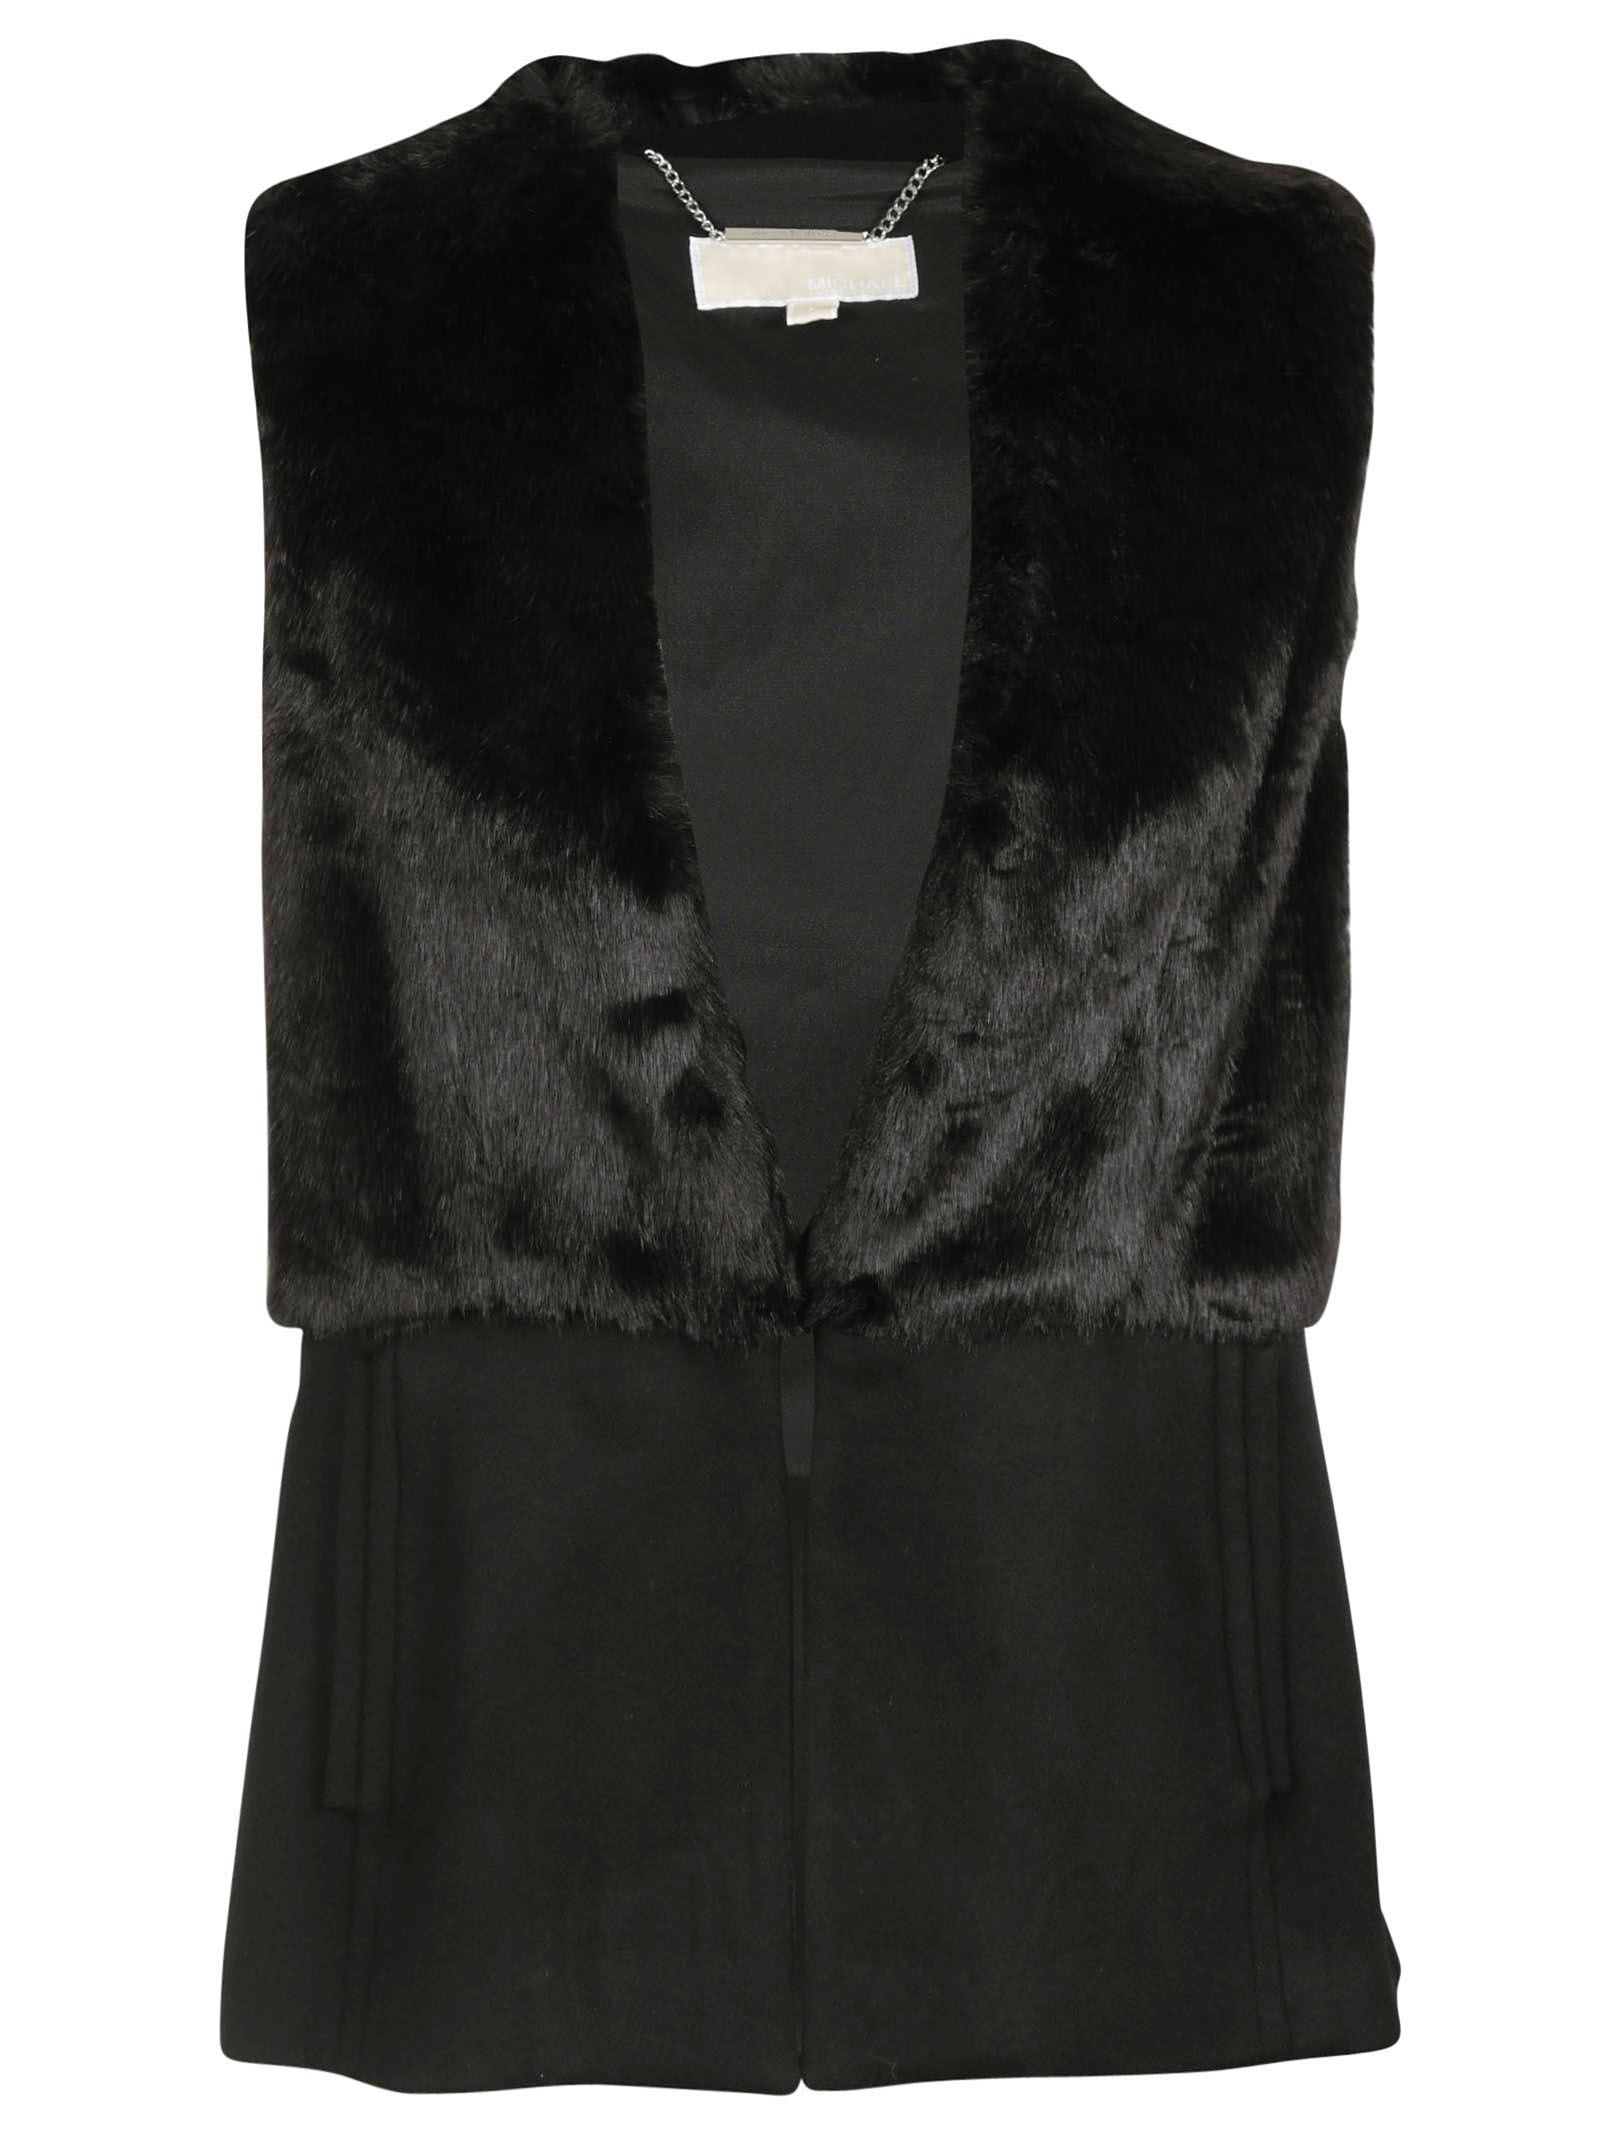 michael kors female 188971 black fur gilet